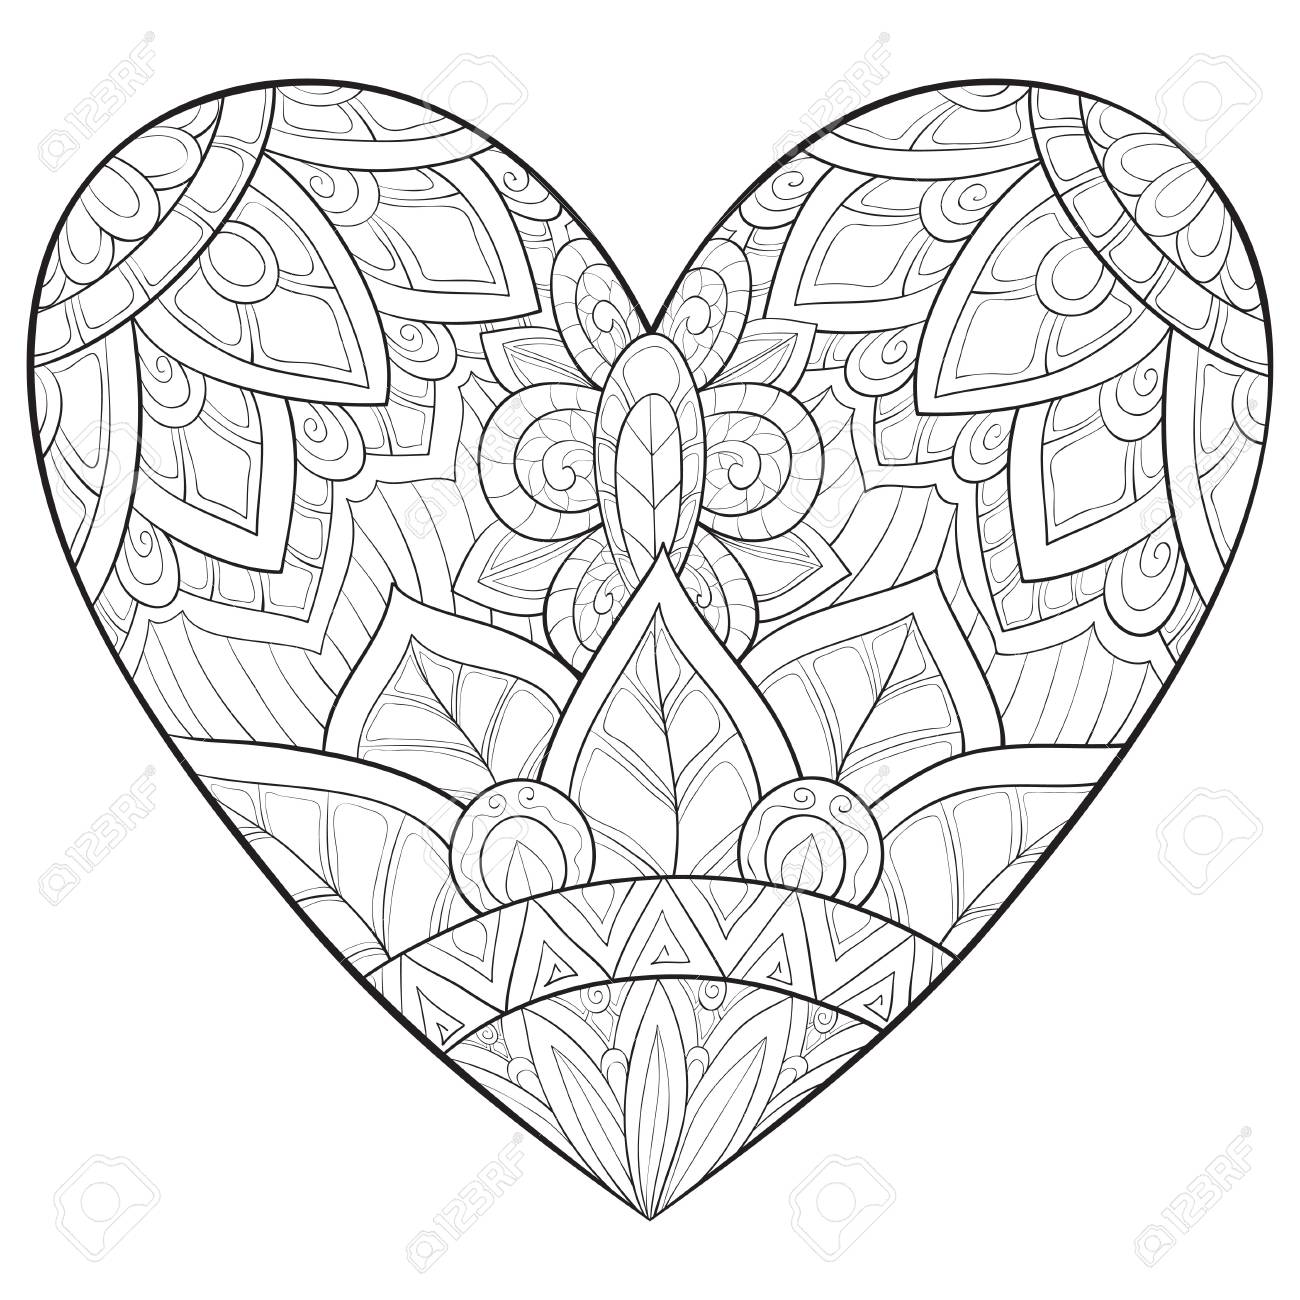 A Cute Heart With Ornaments Image For Relaxing Activity A Coloring Royalty Free Cliparts Vectors And Stock Illustration Image 114297666